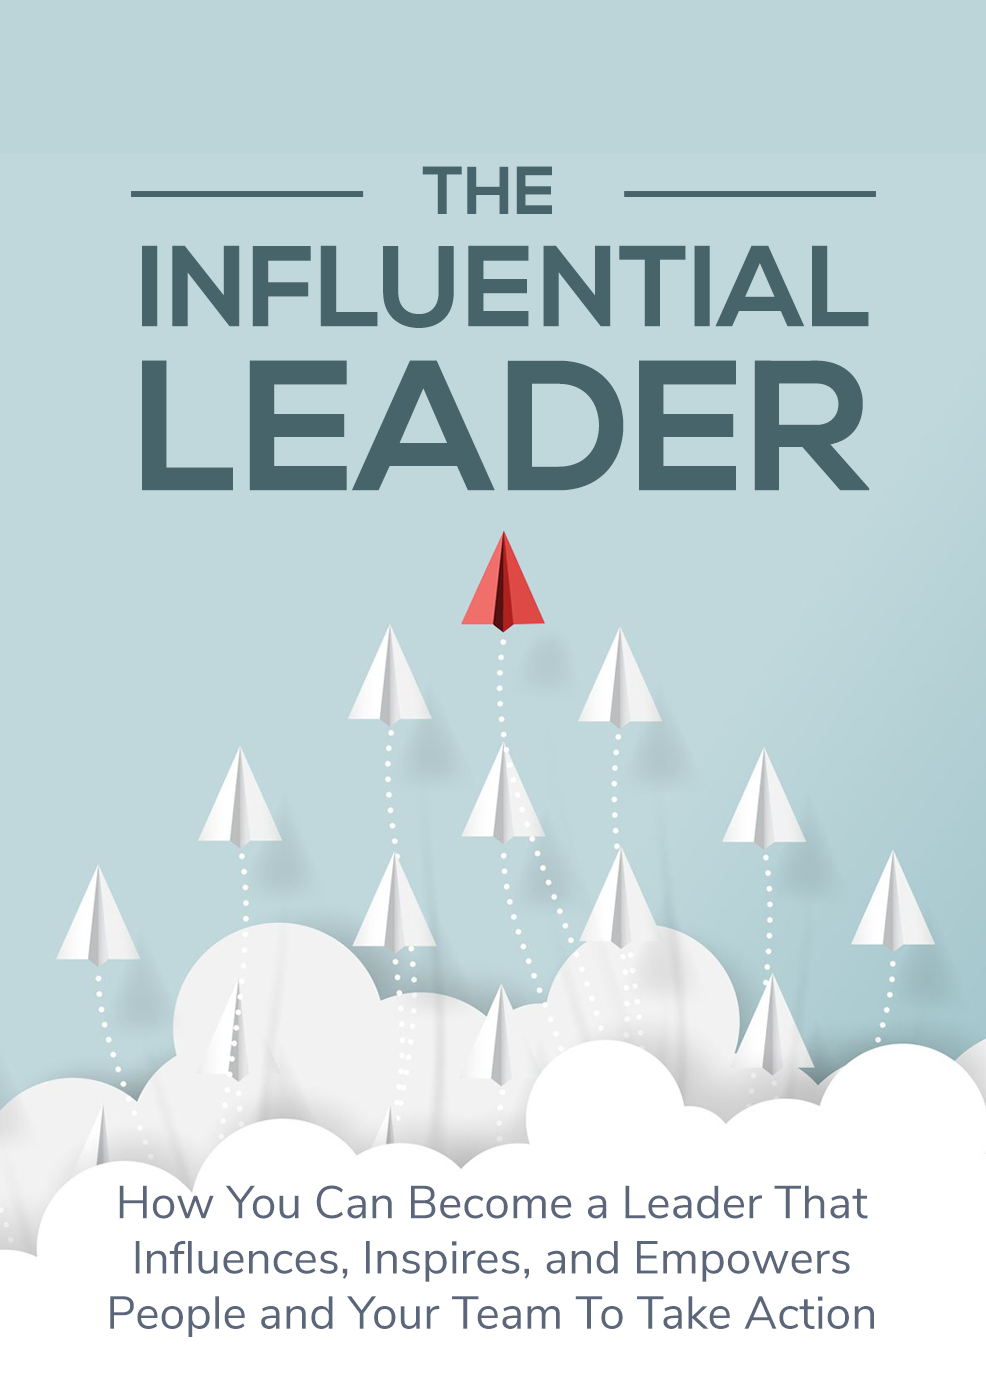 The Influential Leader (How You Can Become A Leader That Influences, Inspires, And Empowers People And Your Team To Take Action) Ebook's Ebook Image